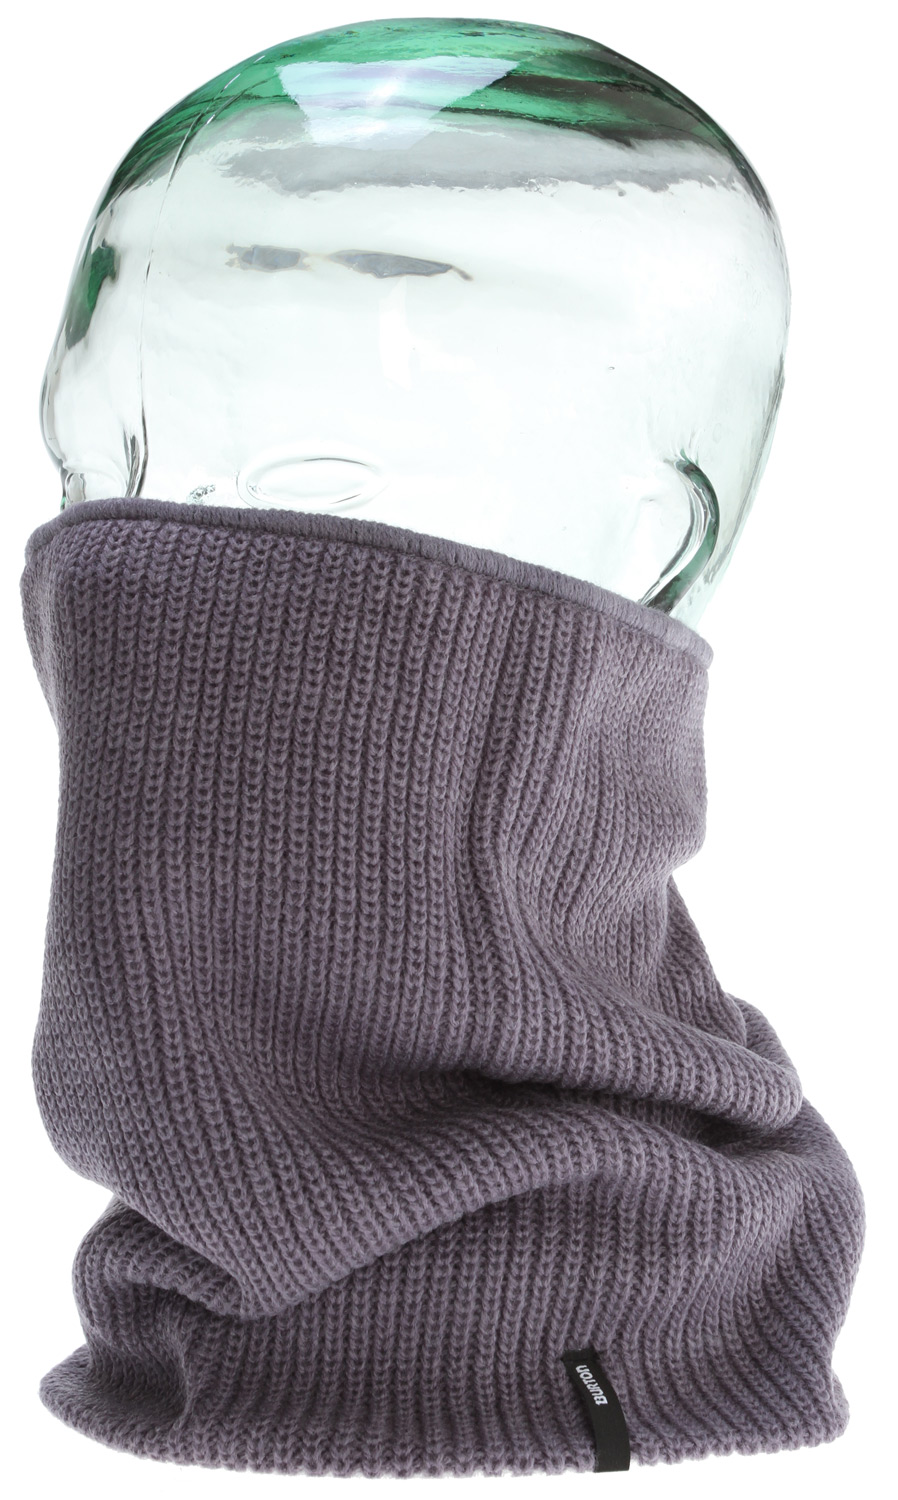 Snowboard Key Features of the Burton Truckstop Neck Warmer: 100% Acrylic Extra Long Basic Knit Neck Warmer - $23.00